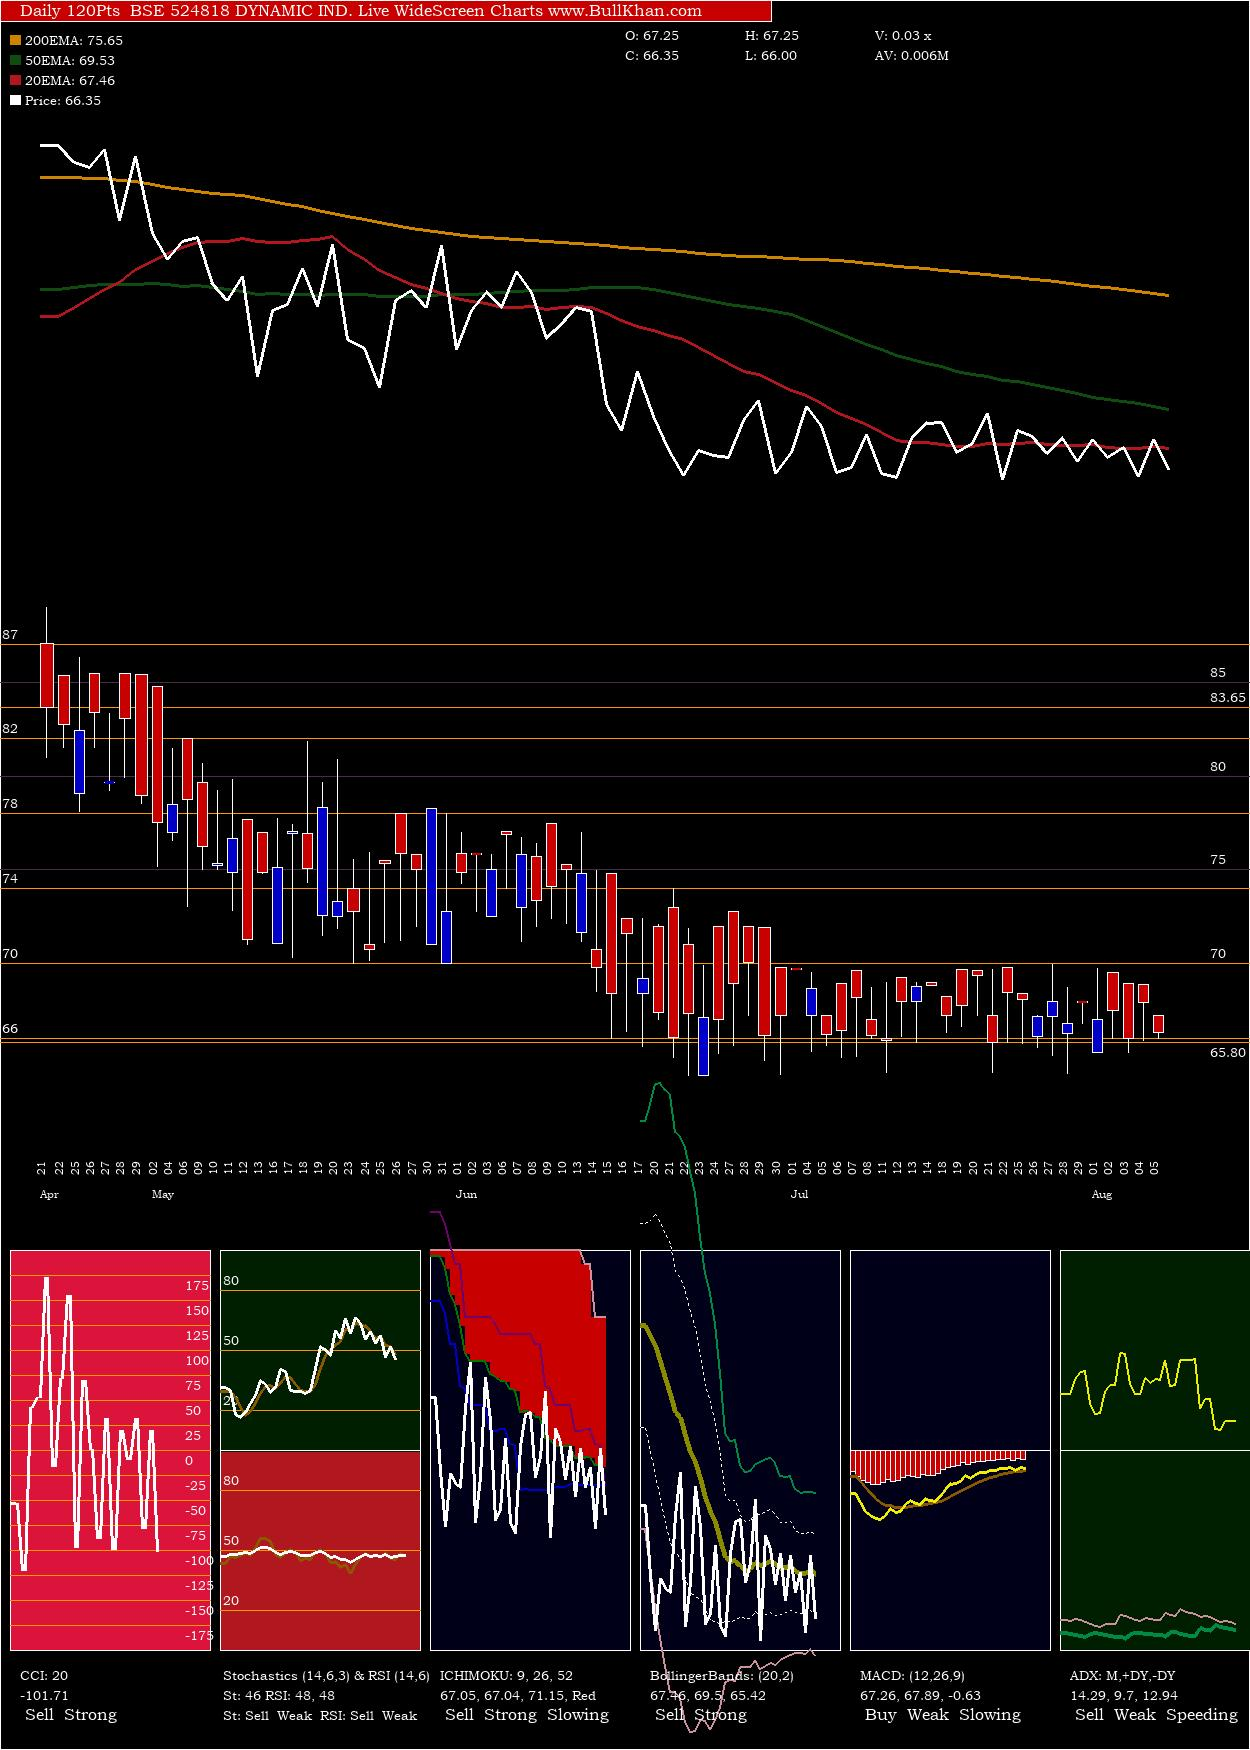 Dynamic Ind charts and indicators